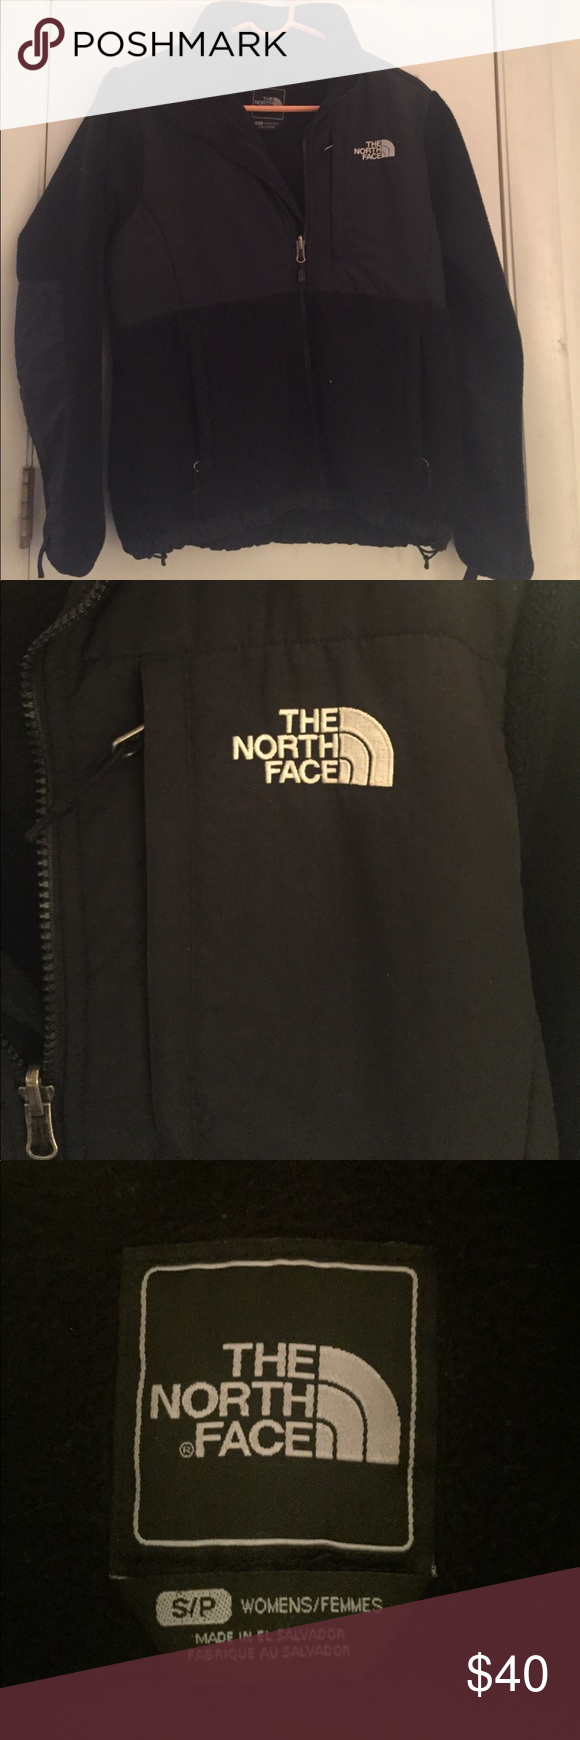 North Face Fleece jacket In great condition, from a smoke free home. Size Small, offers welcome! North Face Jackets & Coats Puffers